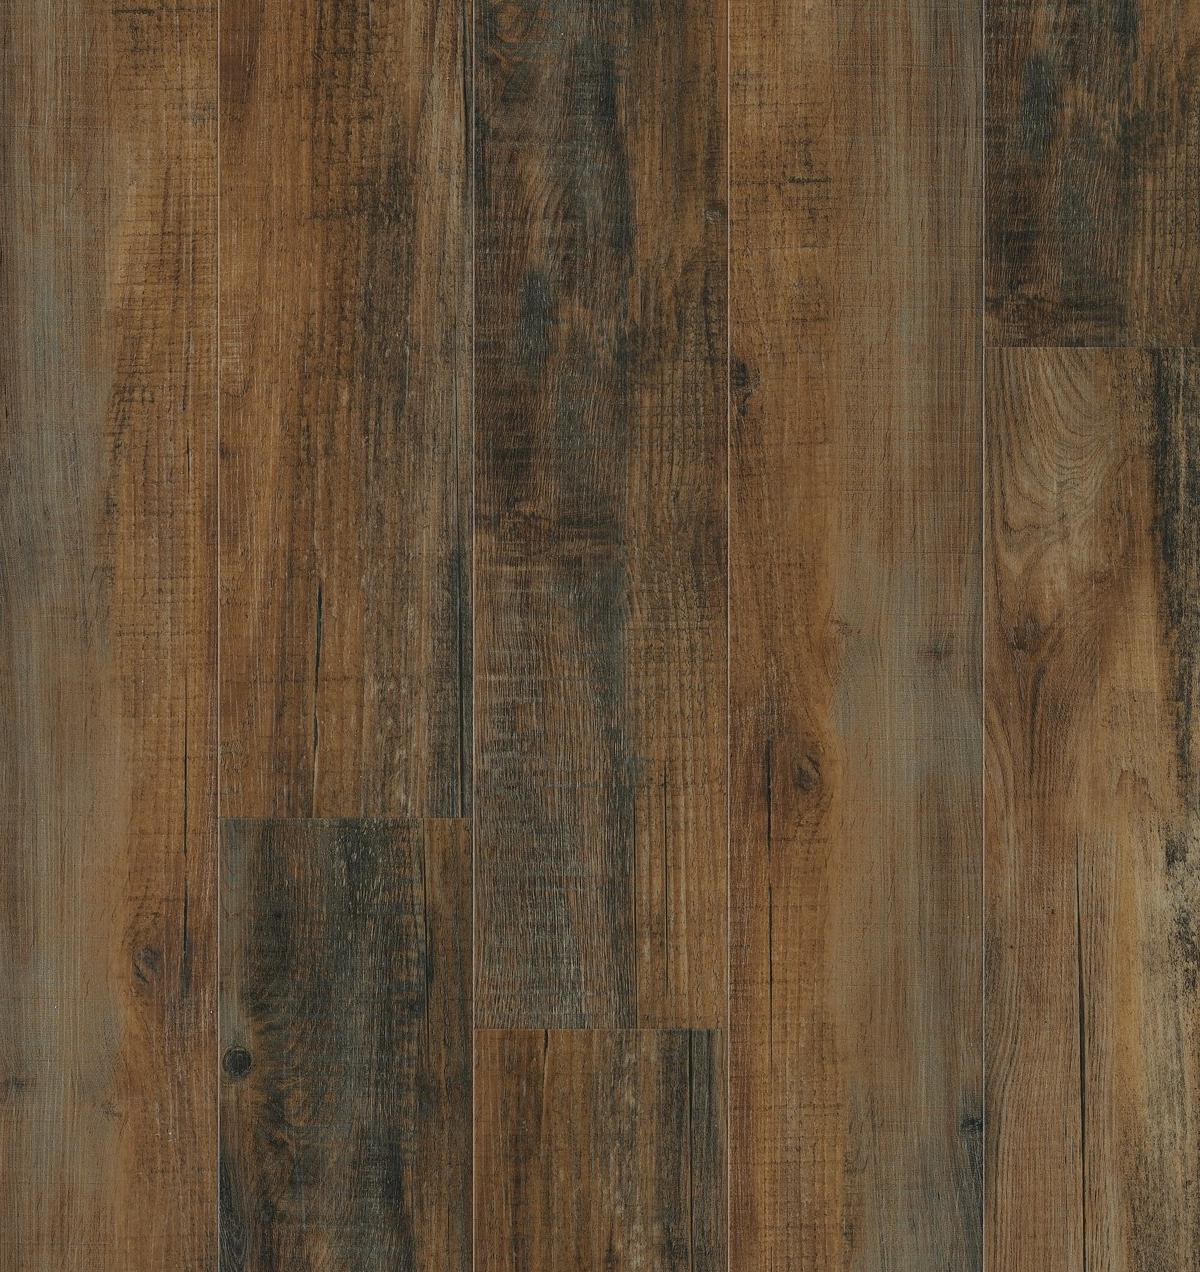 Vinyl Plank Flooring And Luxury Vinyl Tile Flooring At Discount